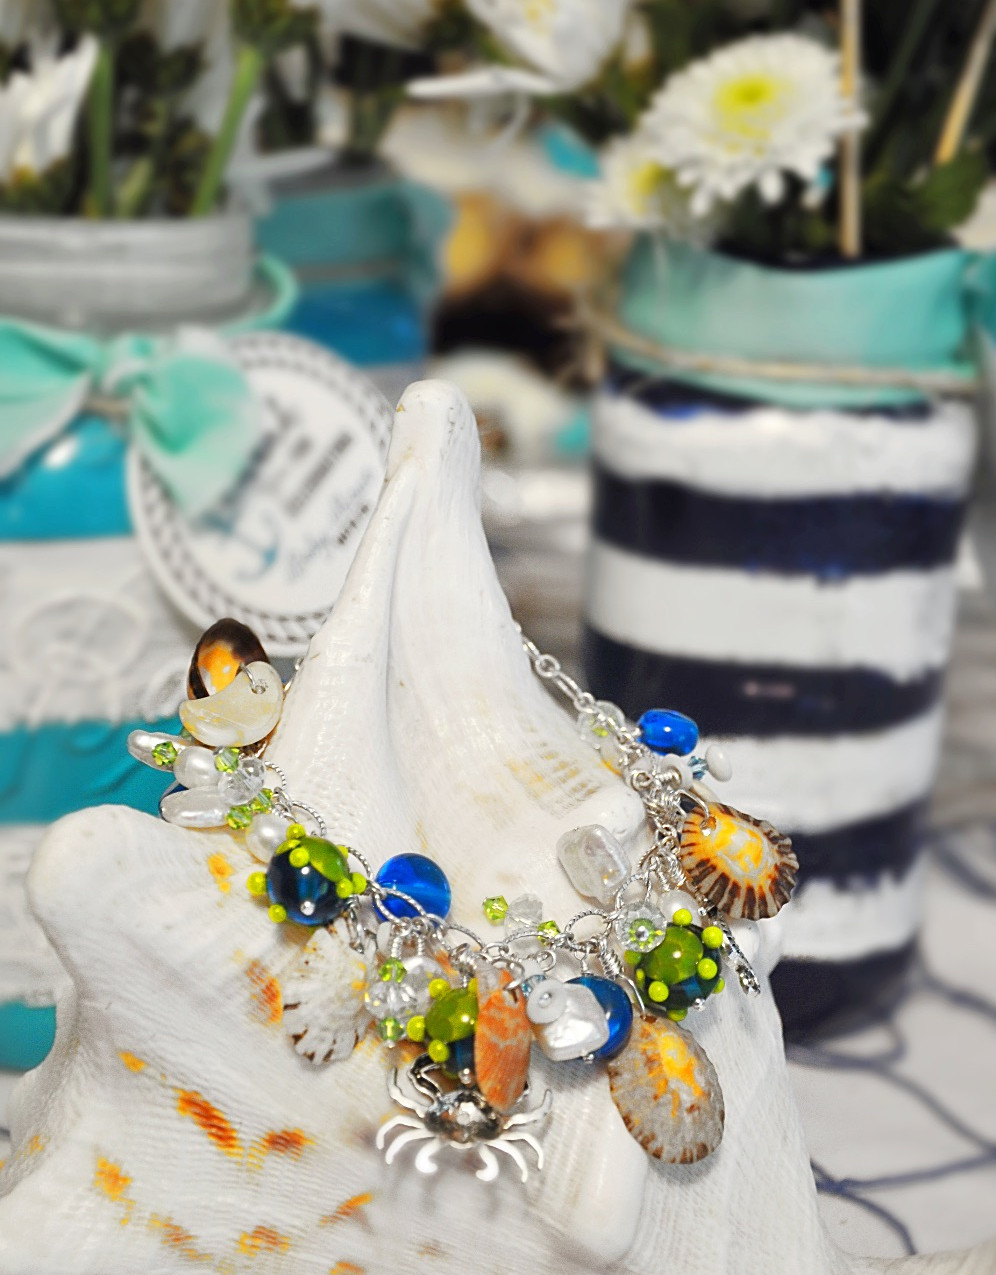 The Blue Puffin Bracelet